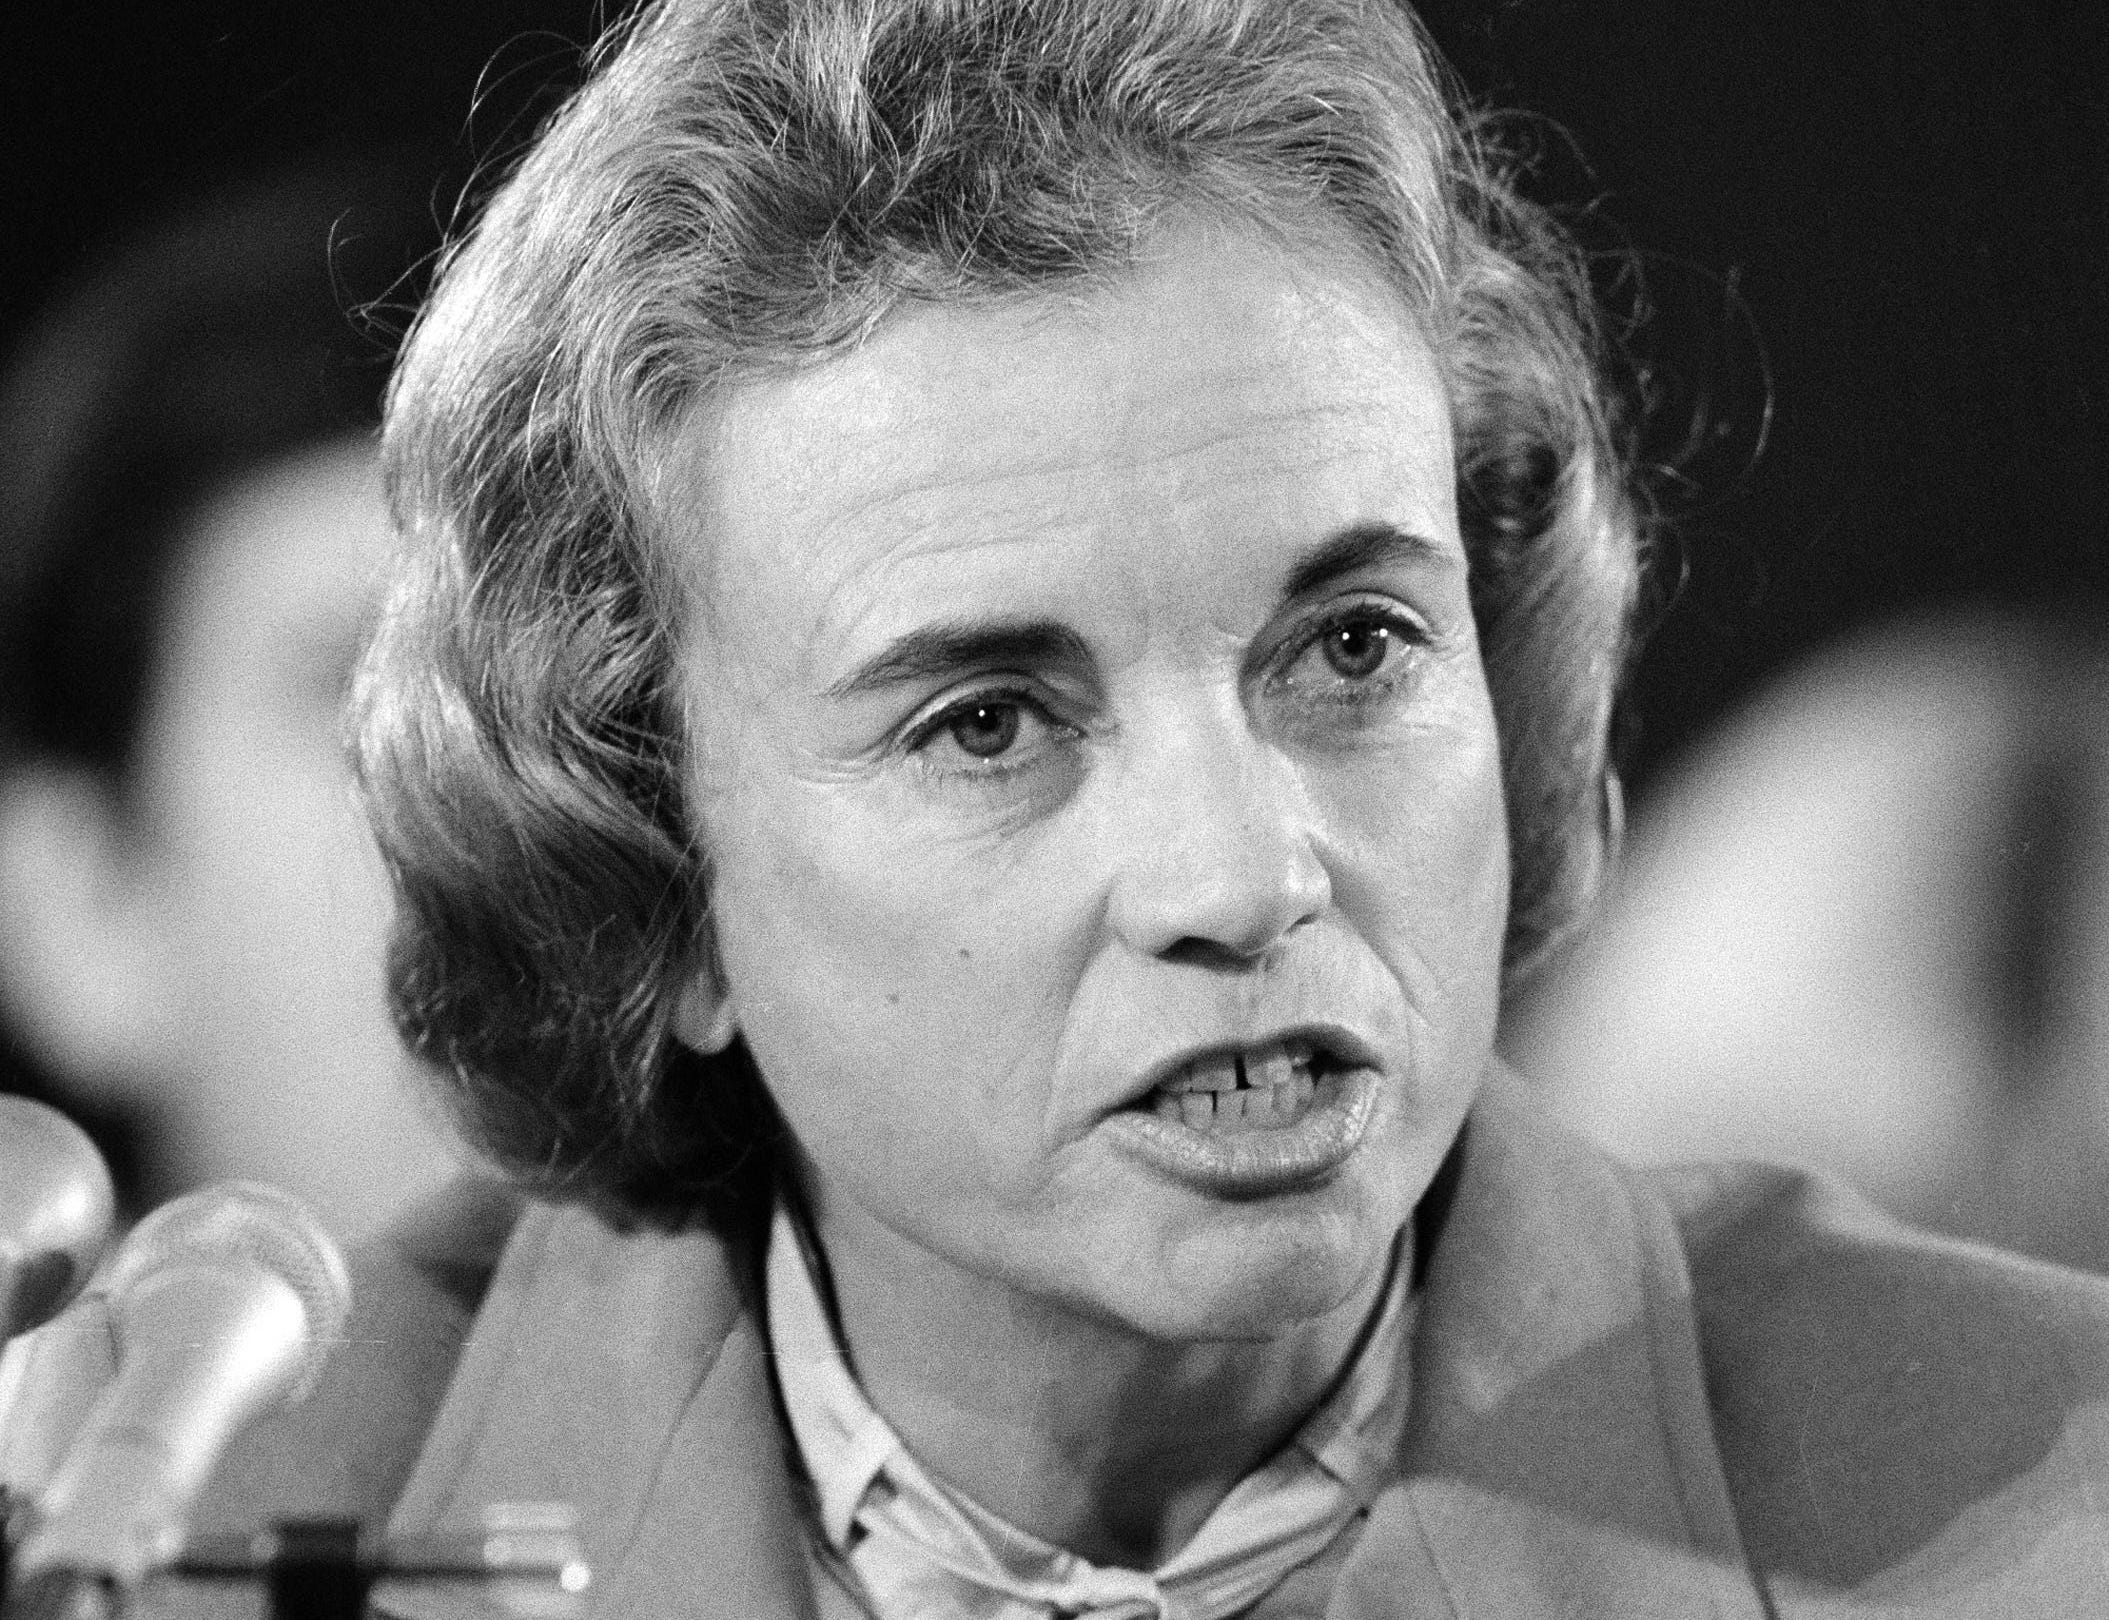 Supreme Court nominee Sandra Day O'Connor speaks while appearing  before the Senate Judiciary Committee, Sept. 9, 1981, during her confirmation hearings.